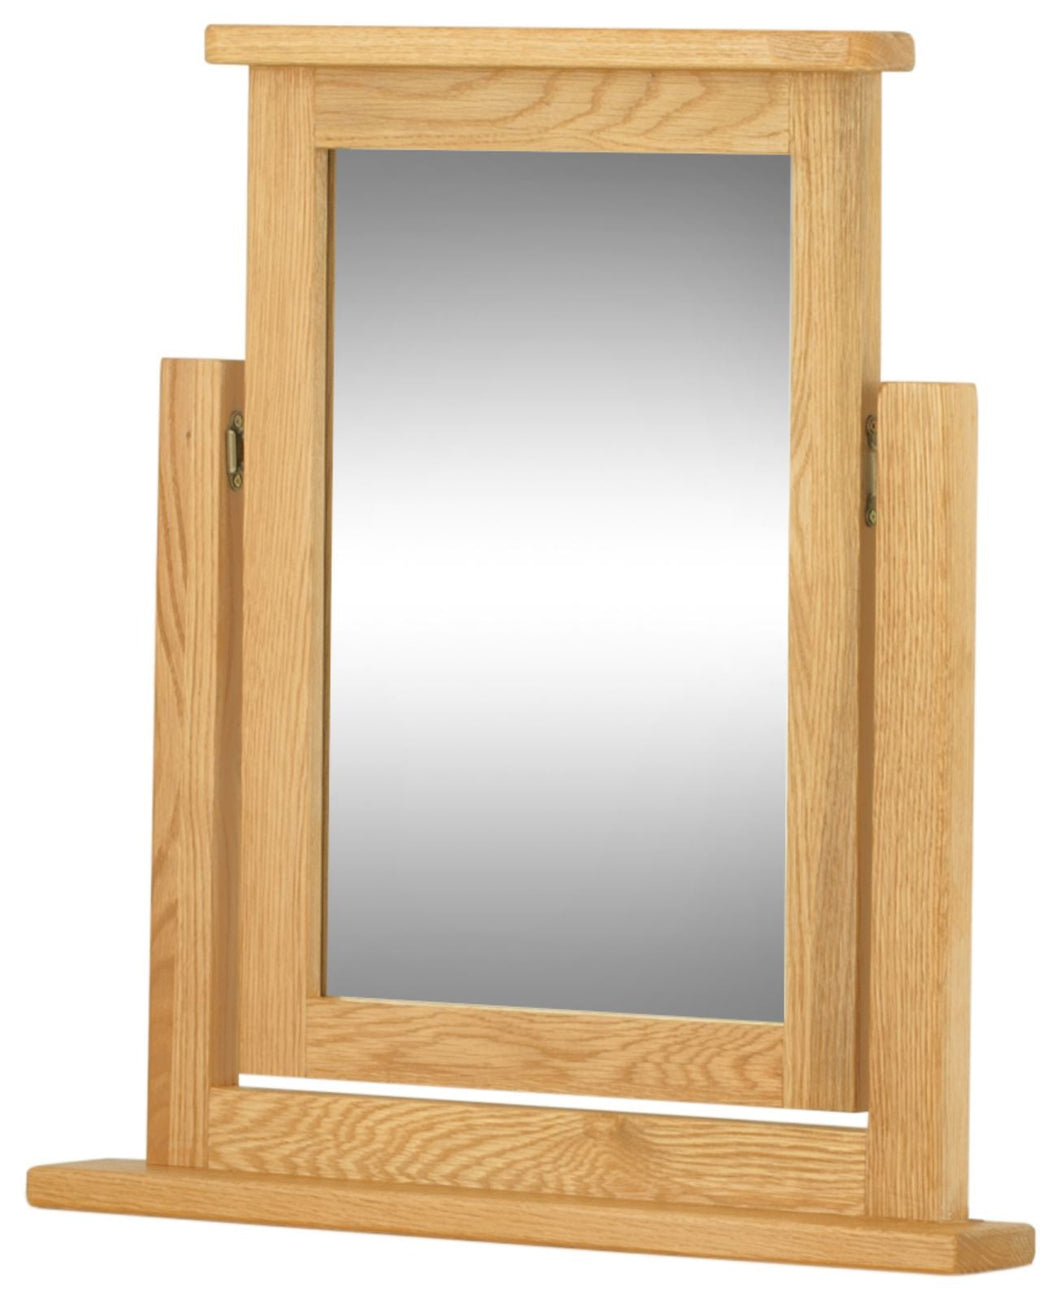 Binbrook Swing Mirror - Oak